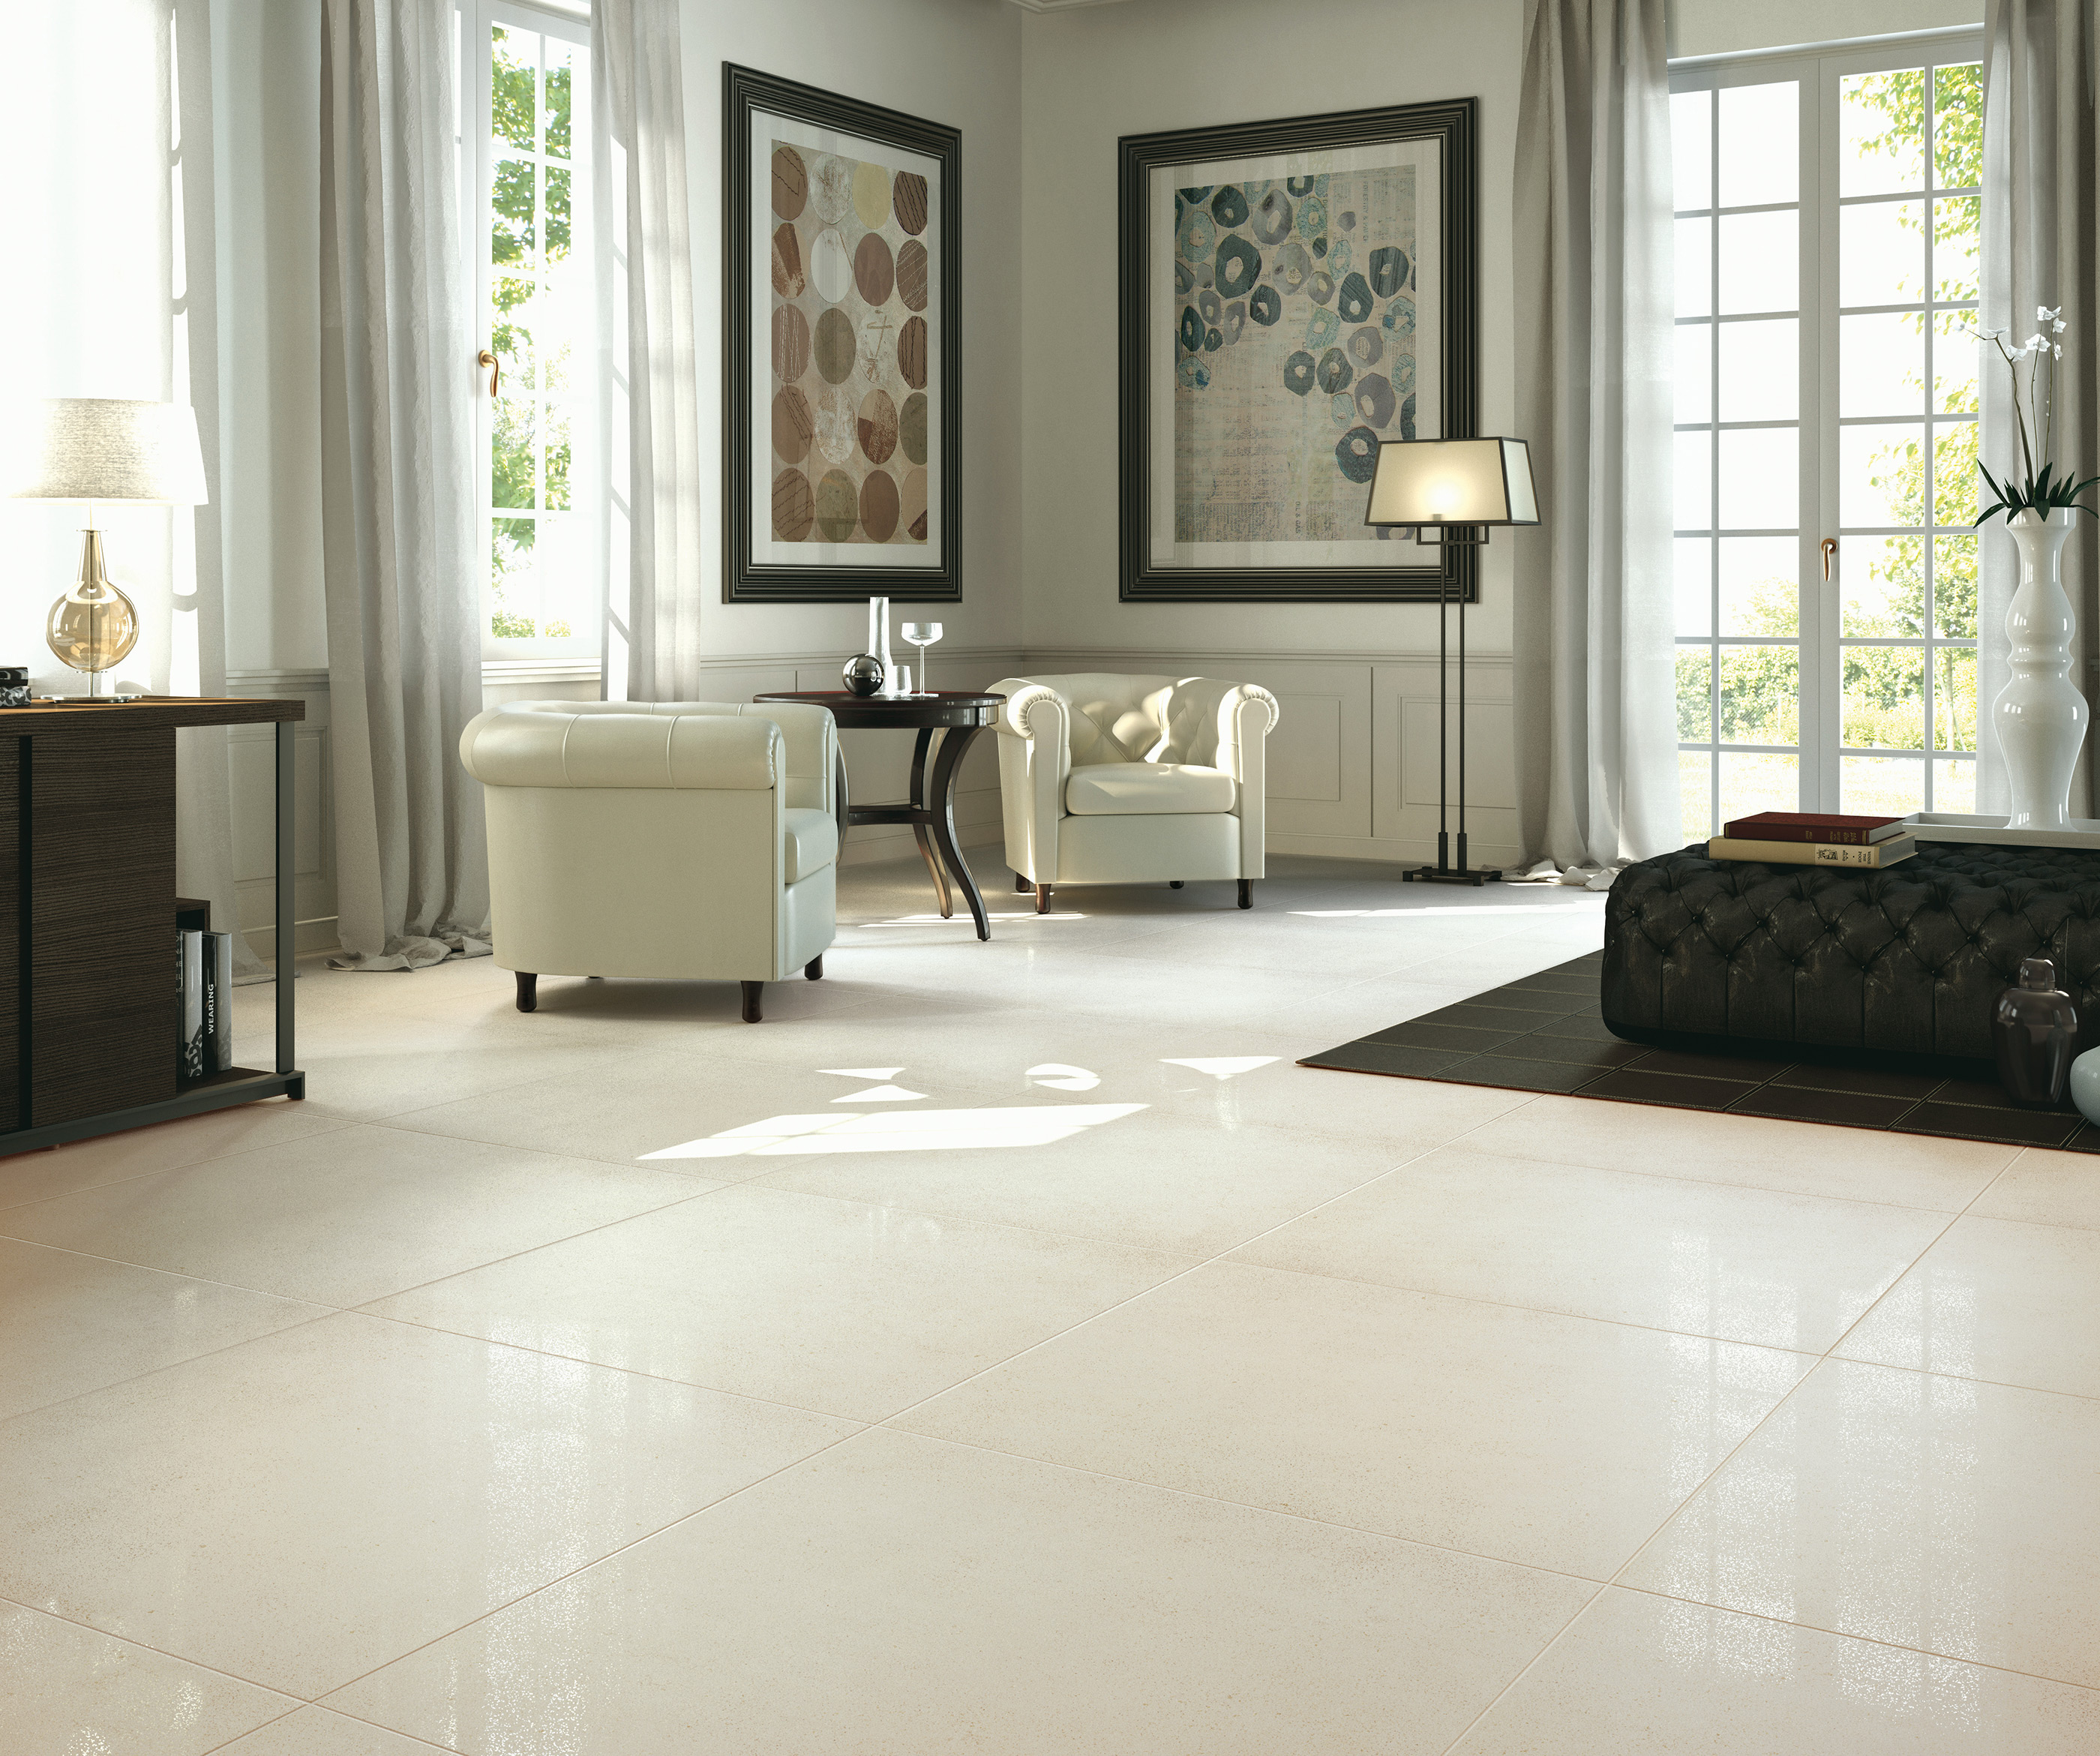 Image result for STATUARIO marble floor